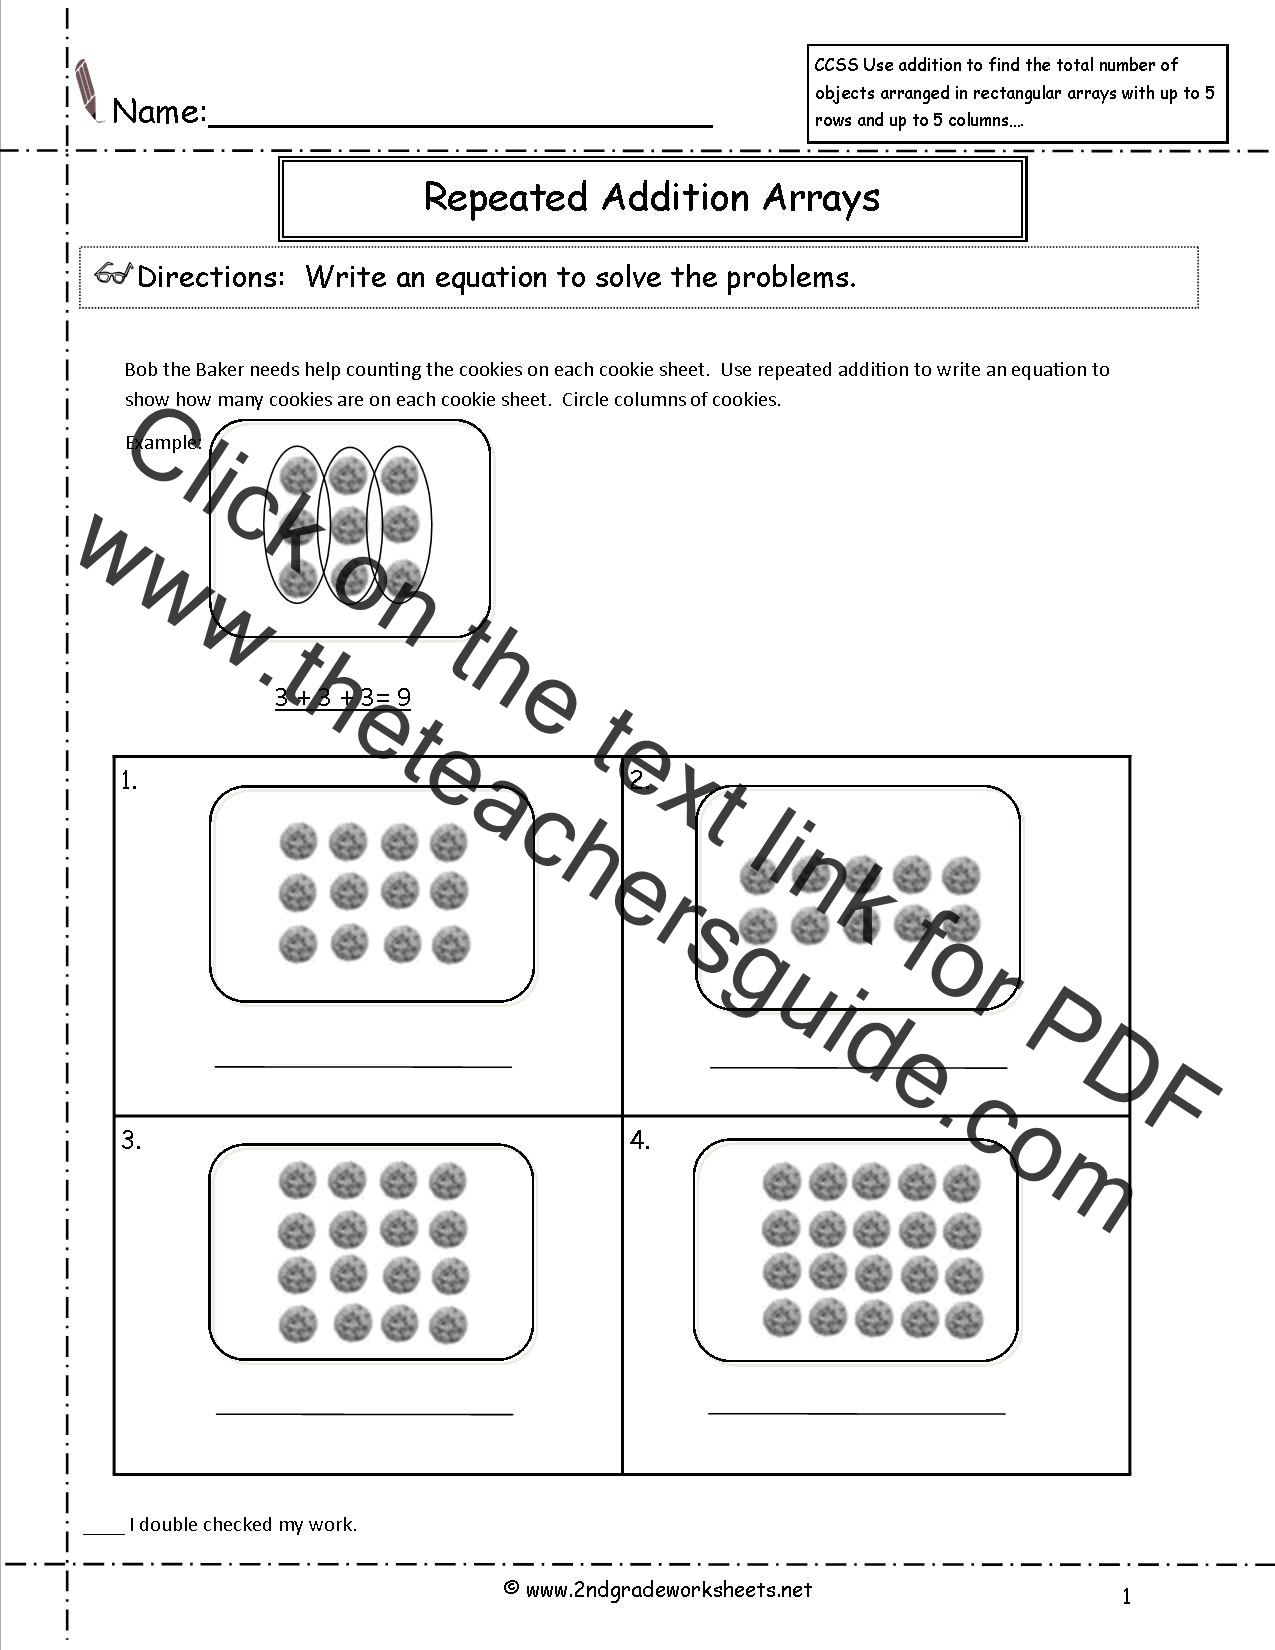 Printables Second Grade Math Worksheets Common Core 2nd grade math common core state standards worksheets oa 4 worksheets